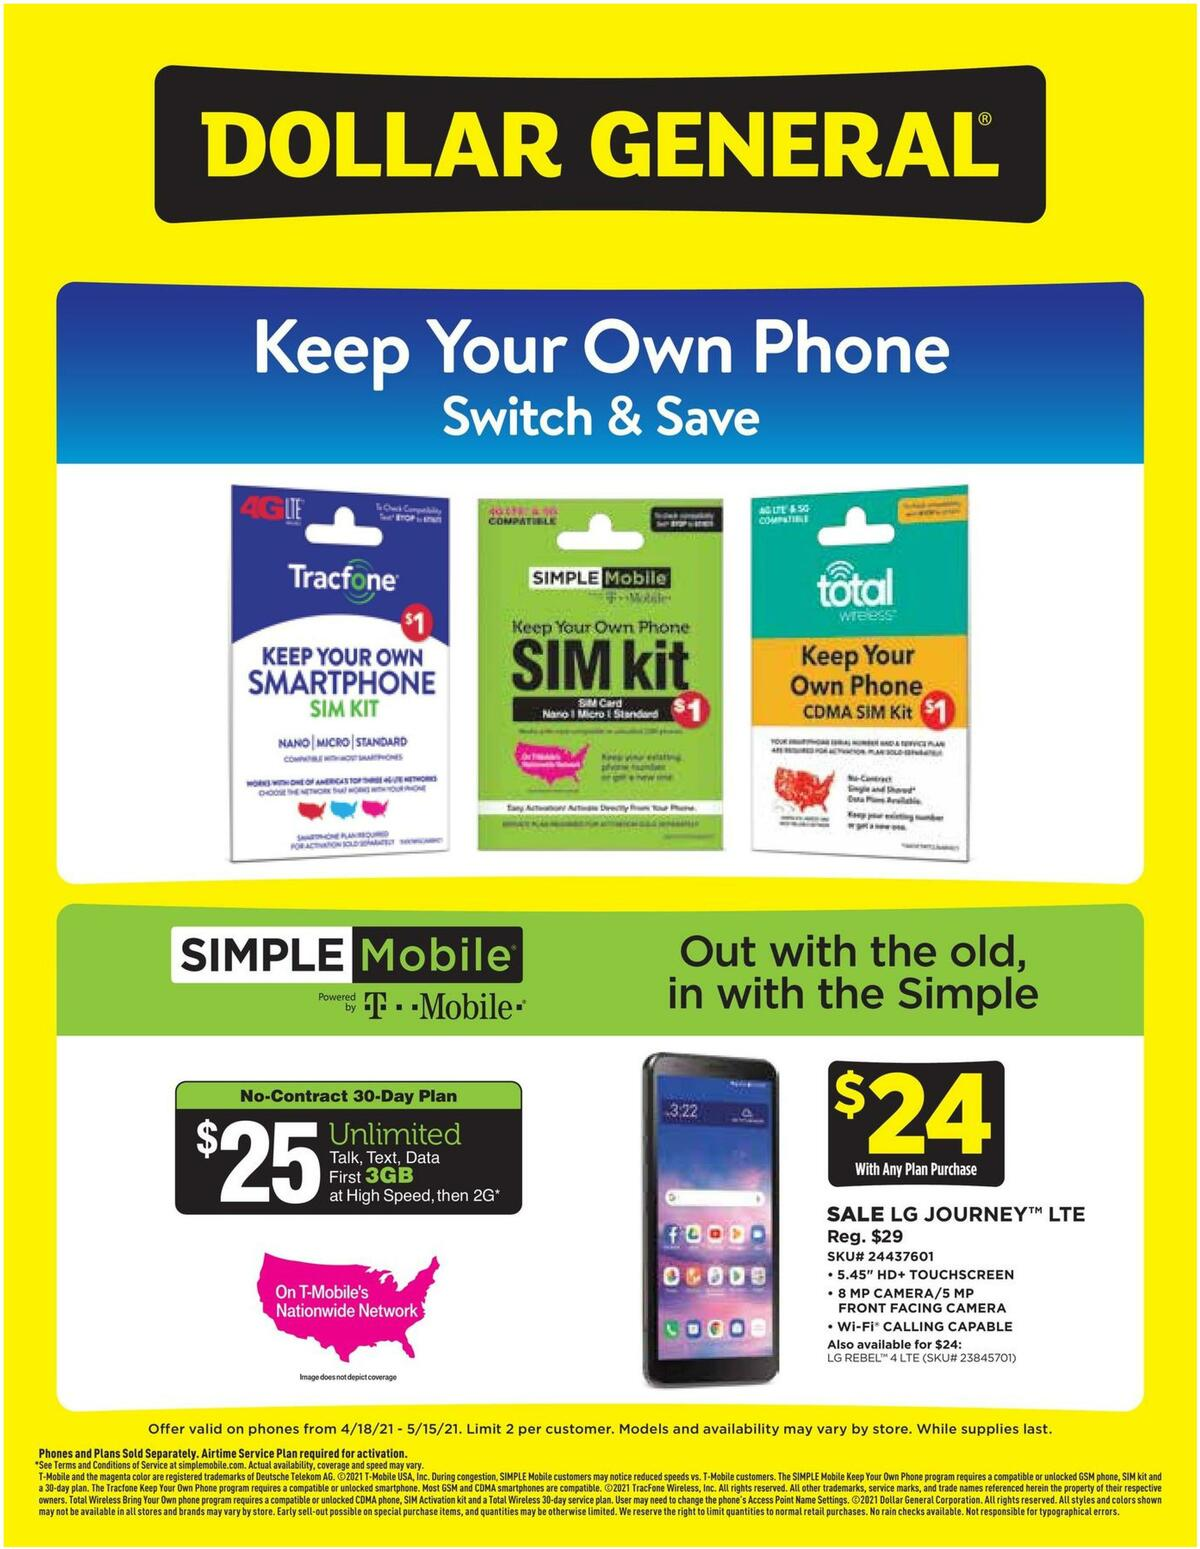 Dollar General Weekly Wireless Specials Weekly Ad from April 18